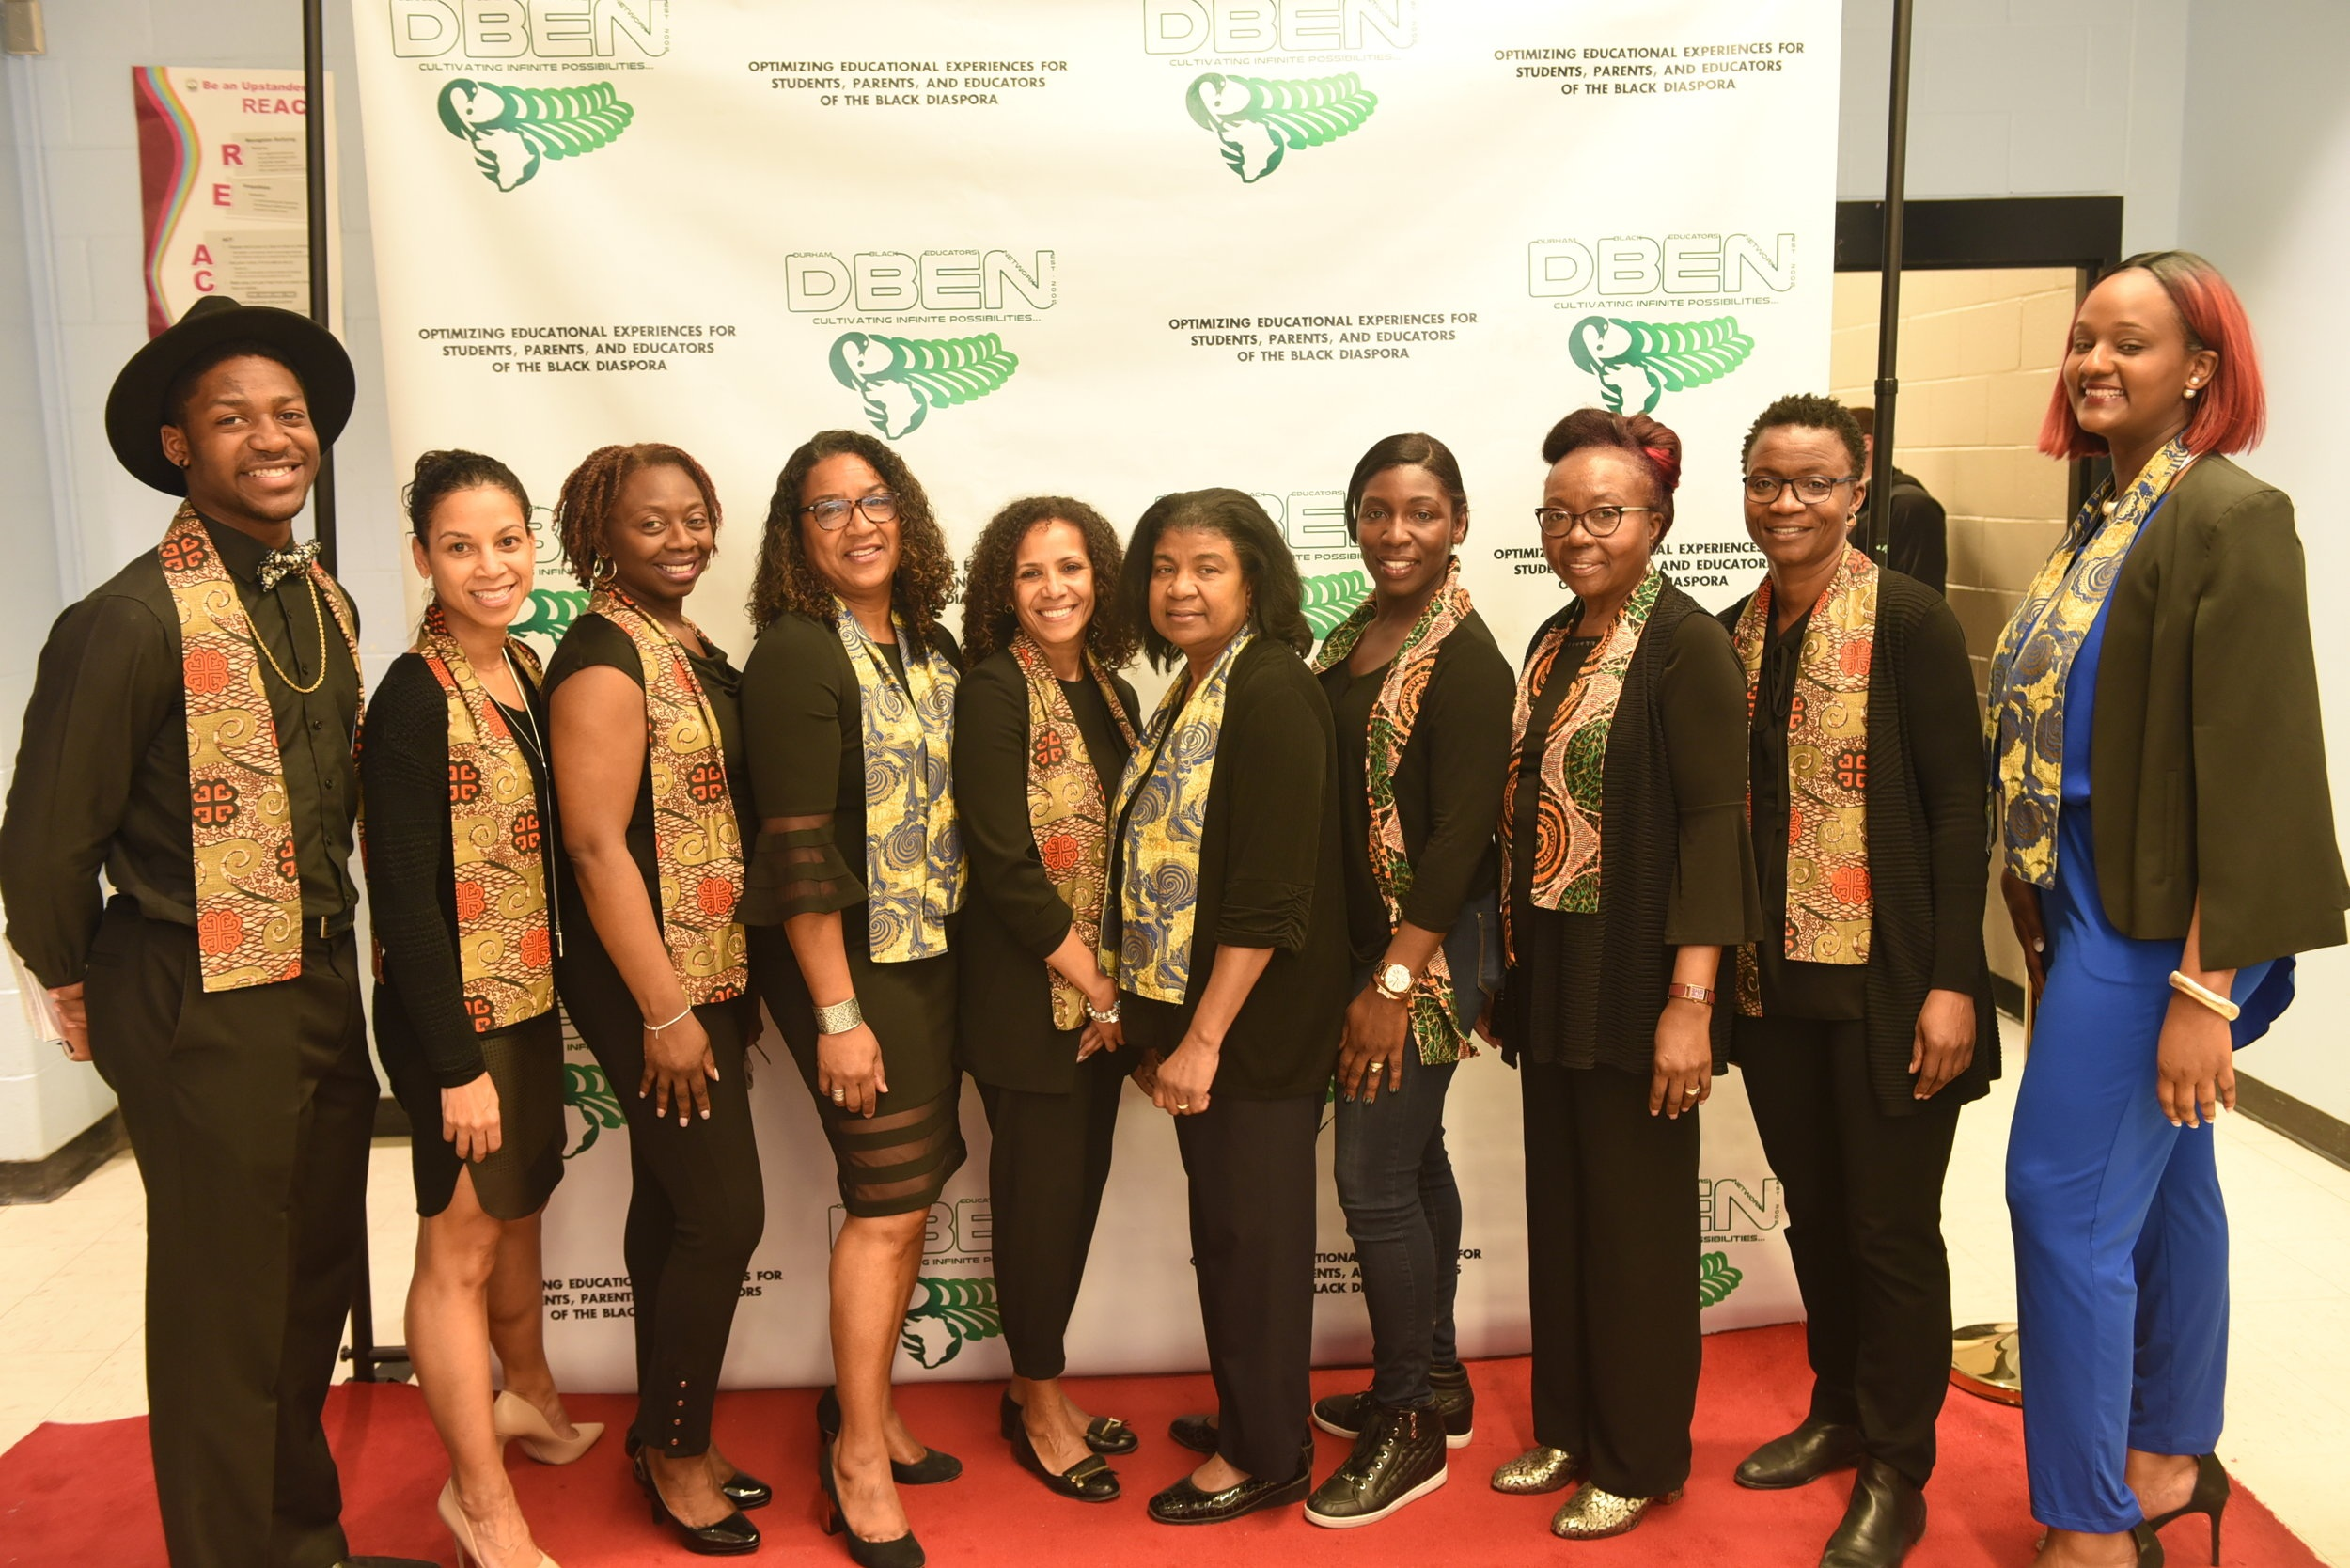 The DBEN Recognition Awards Organizing Committee members Lincoln Alexander-Estridge (l), Camille Prince, Shaundell Parris, Tracey Brissett-Grose, Jackie Leacock, Claudette McDonald, Kay-Ann Levy-Sundiata, Marilyn Sinclair, Michel Jackson-Stewart & Cristal Hines